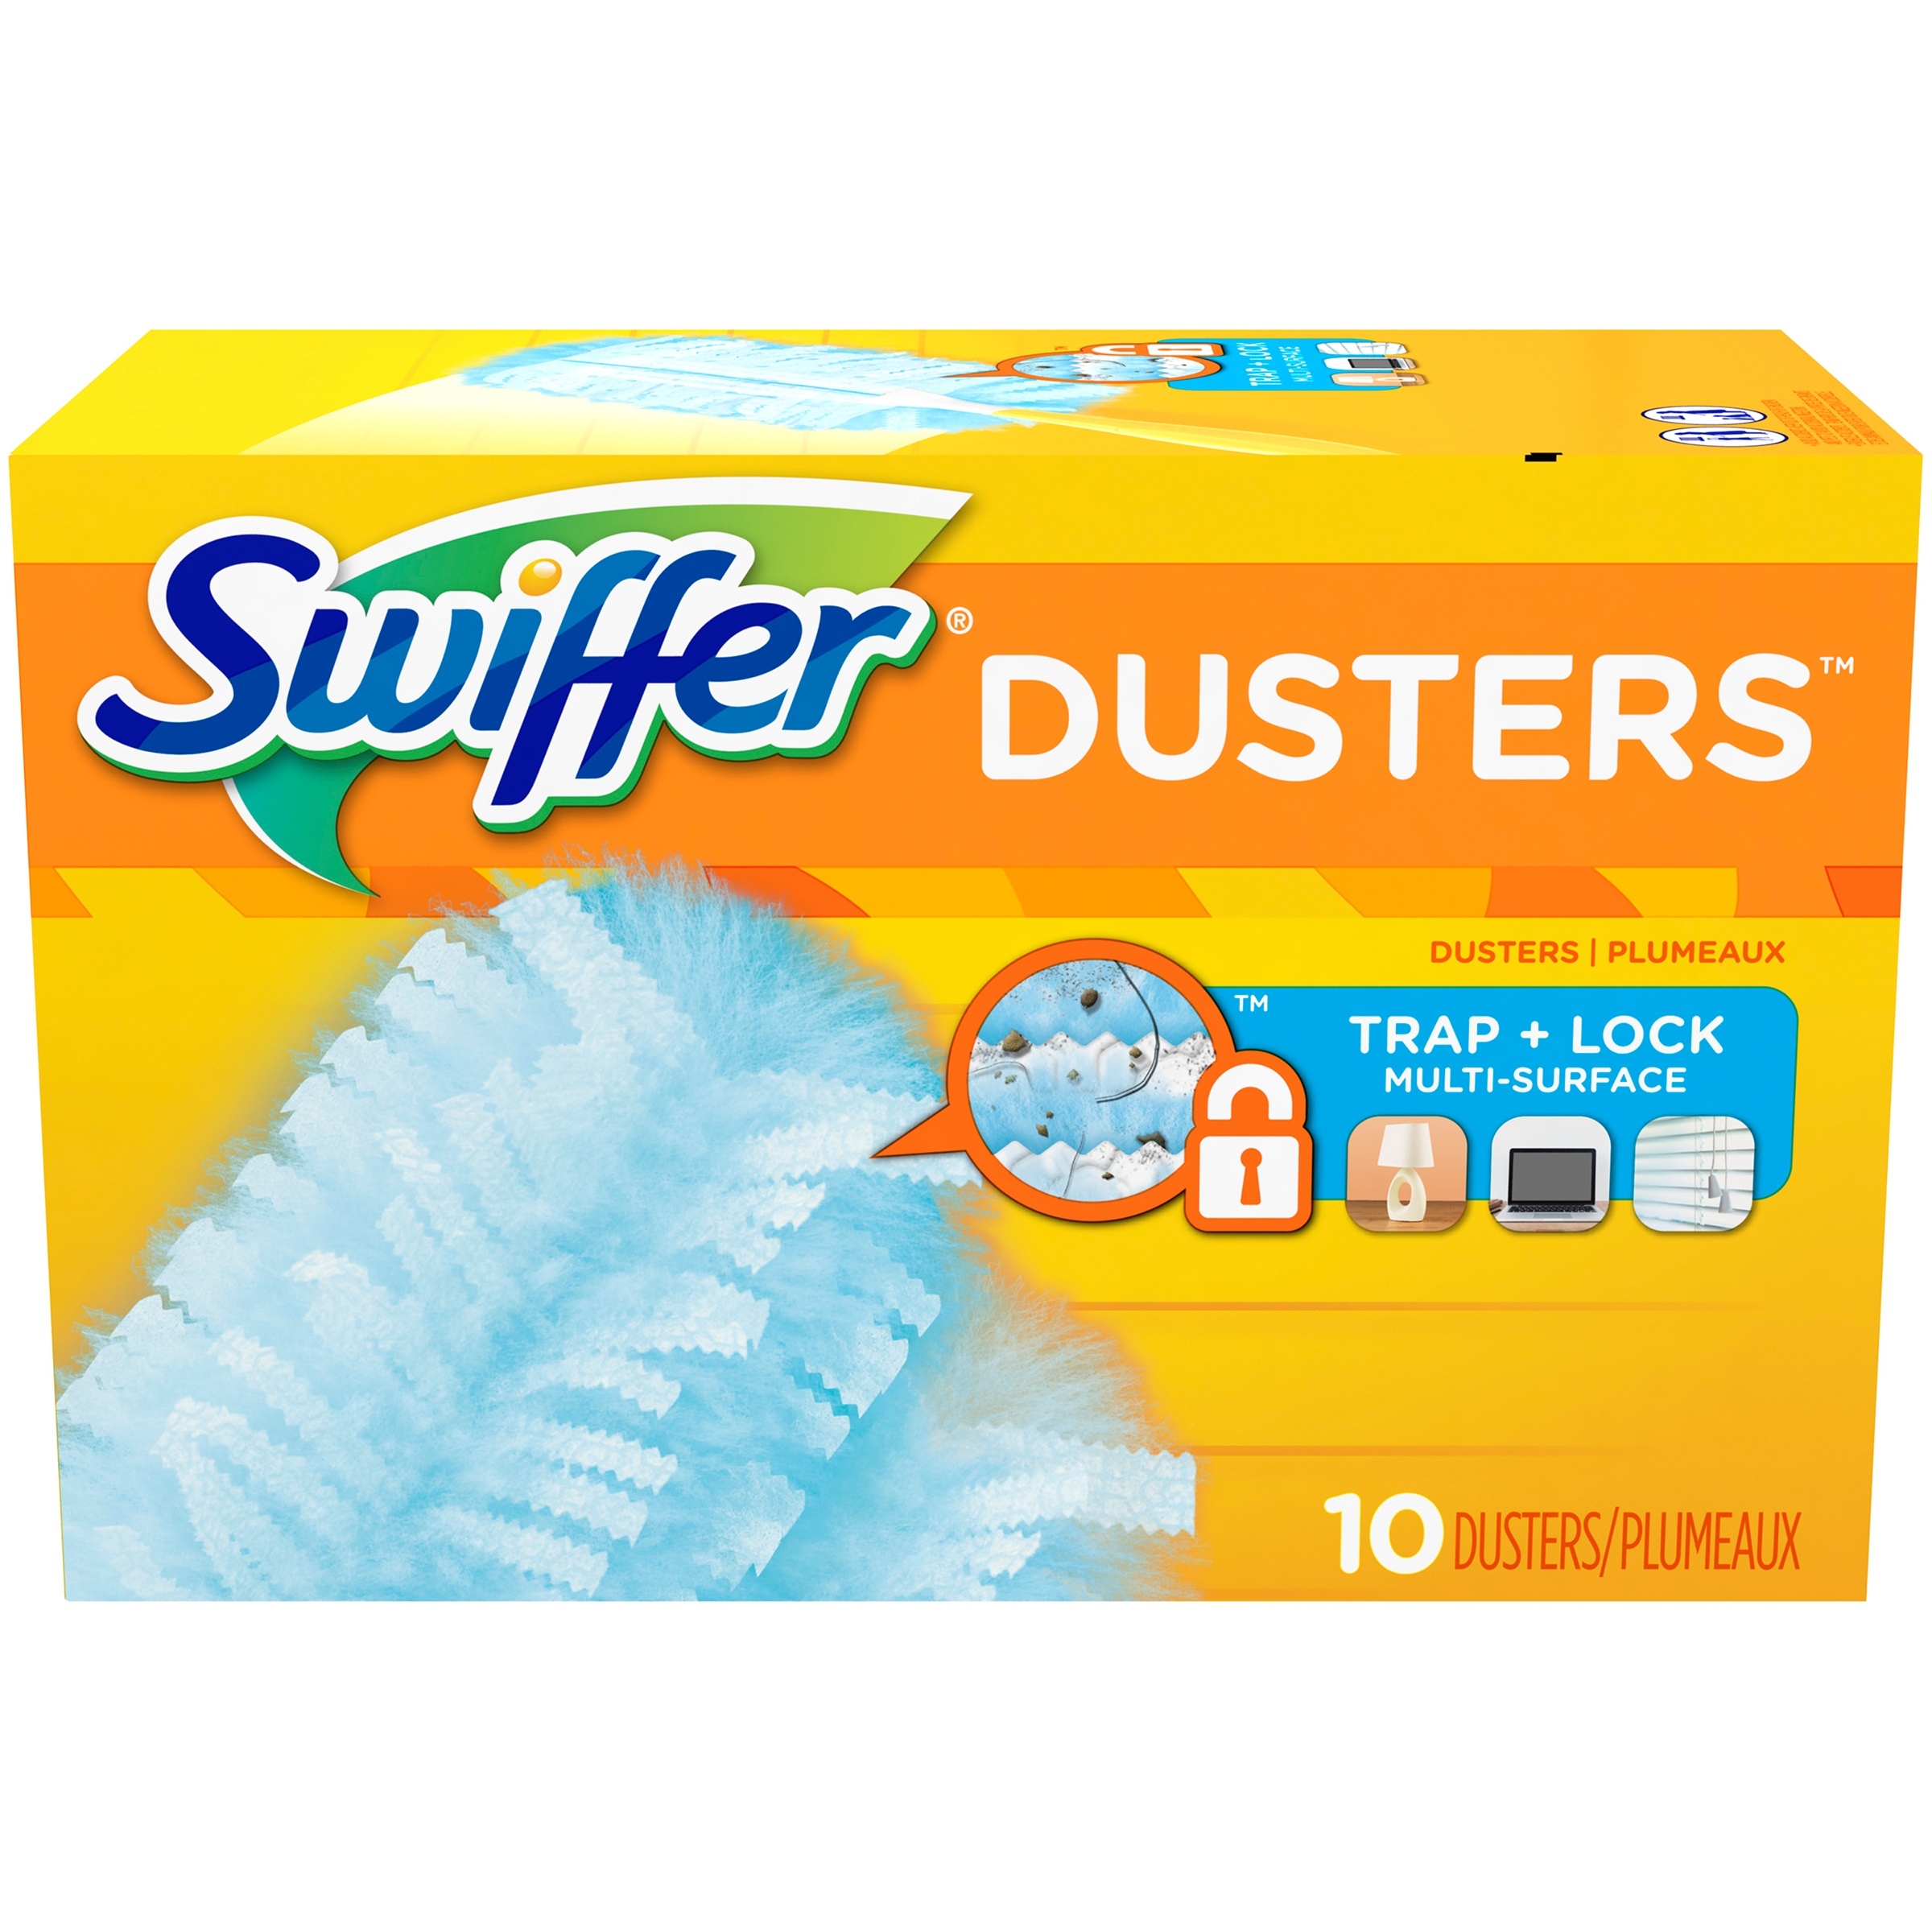 Swiffer Duster Refill Only Unsc - 10count